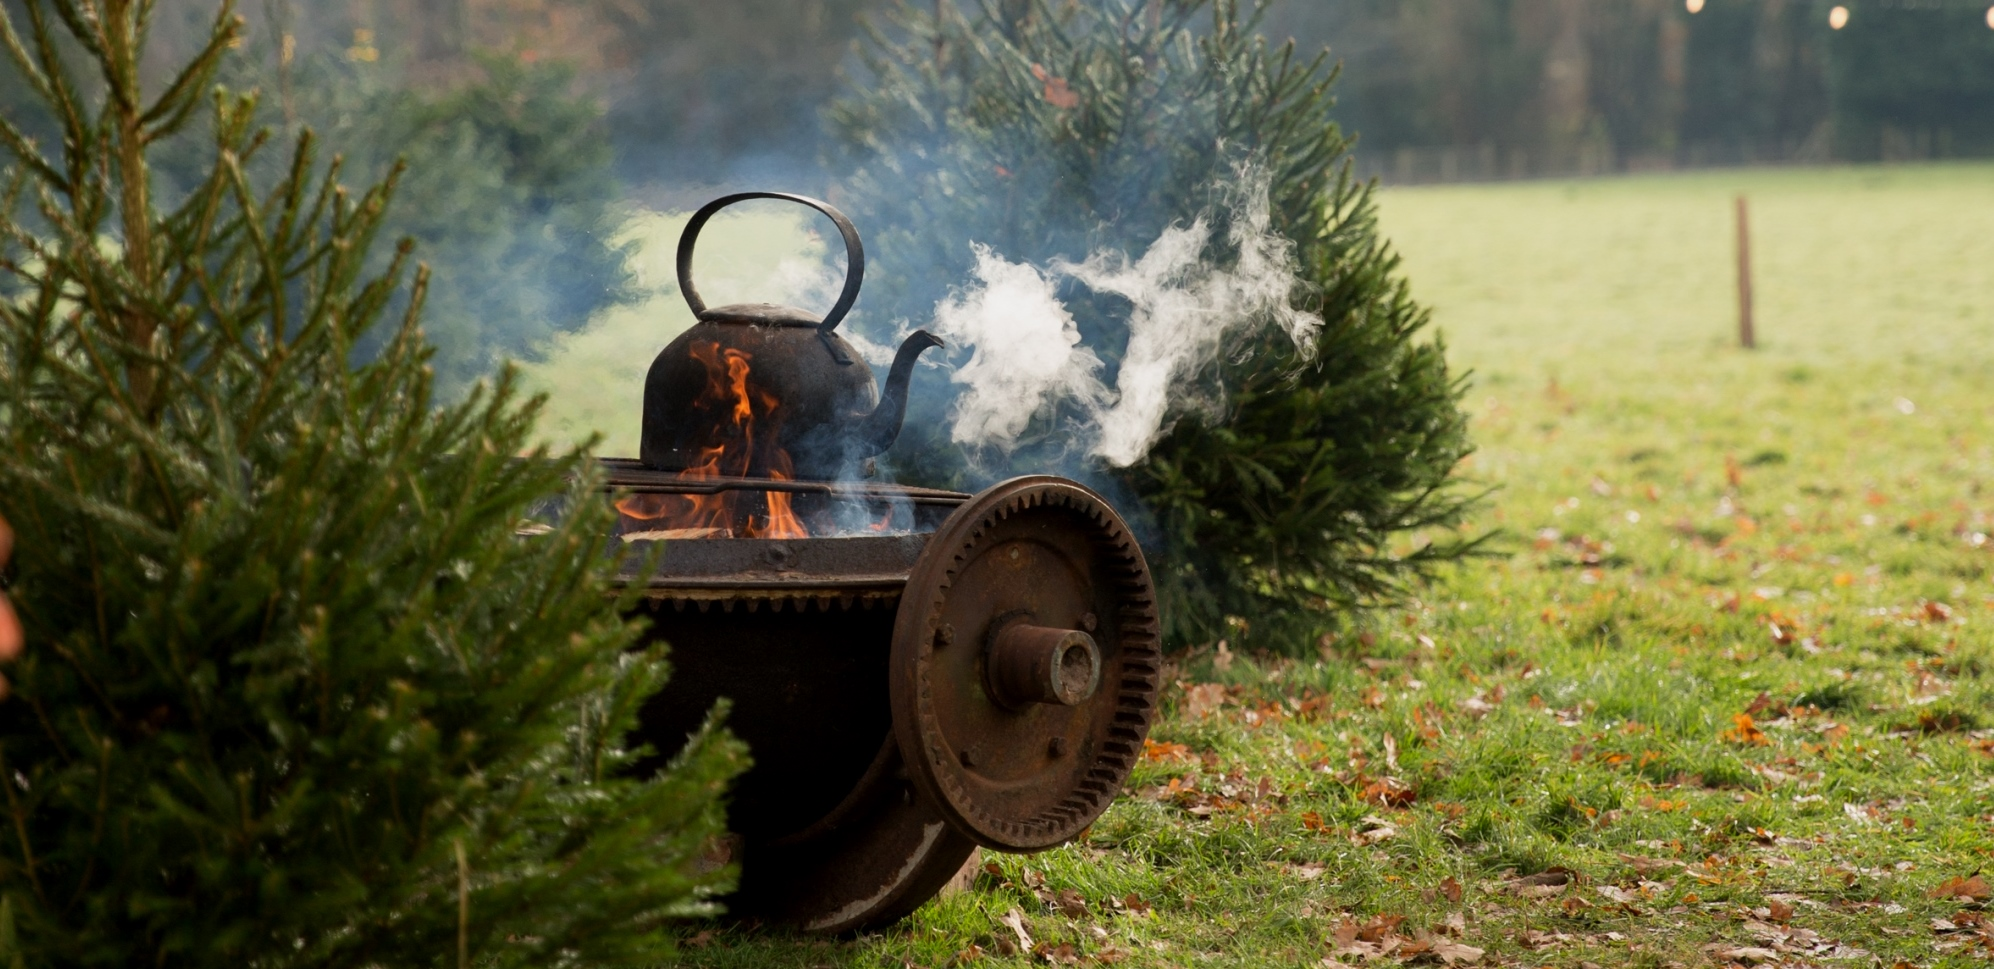 Come and choose your Christmas tree at Wild Sussex